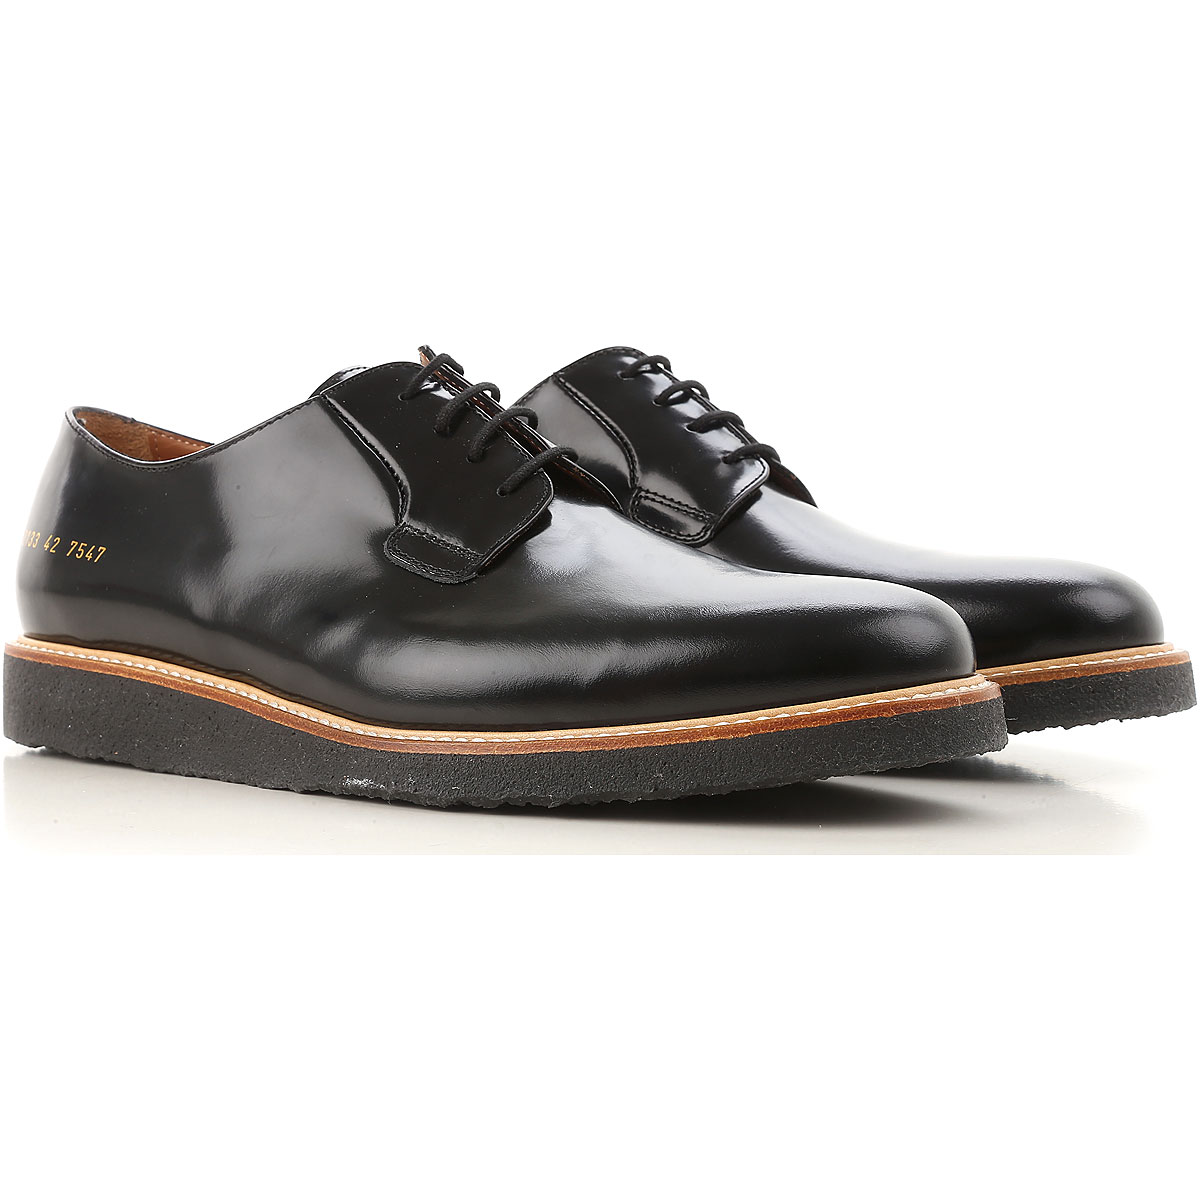 Image of Common Projects Lace Up Shoes for Men Oxfords, Derbies and Brogues On Sale, Black, Leather, 2017, 10 6.5 7.5 8 9